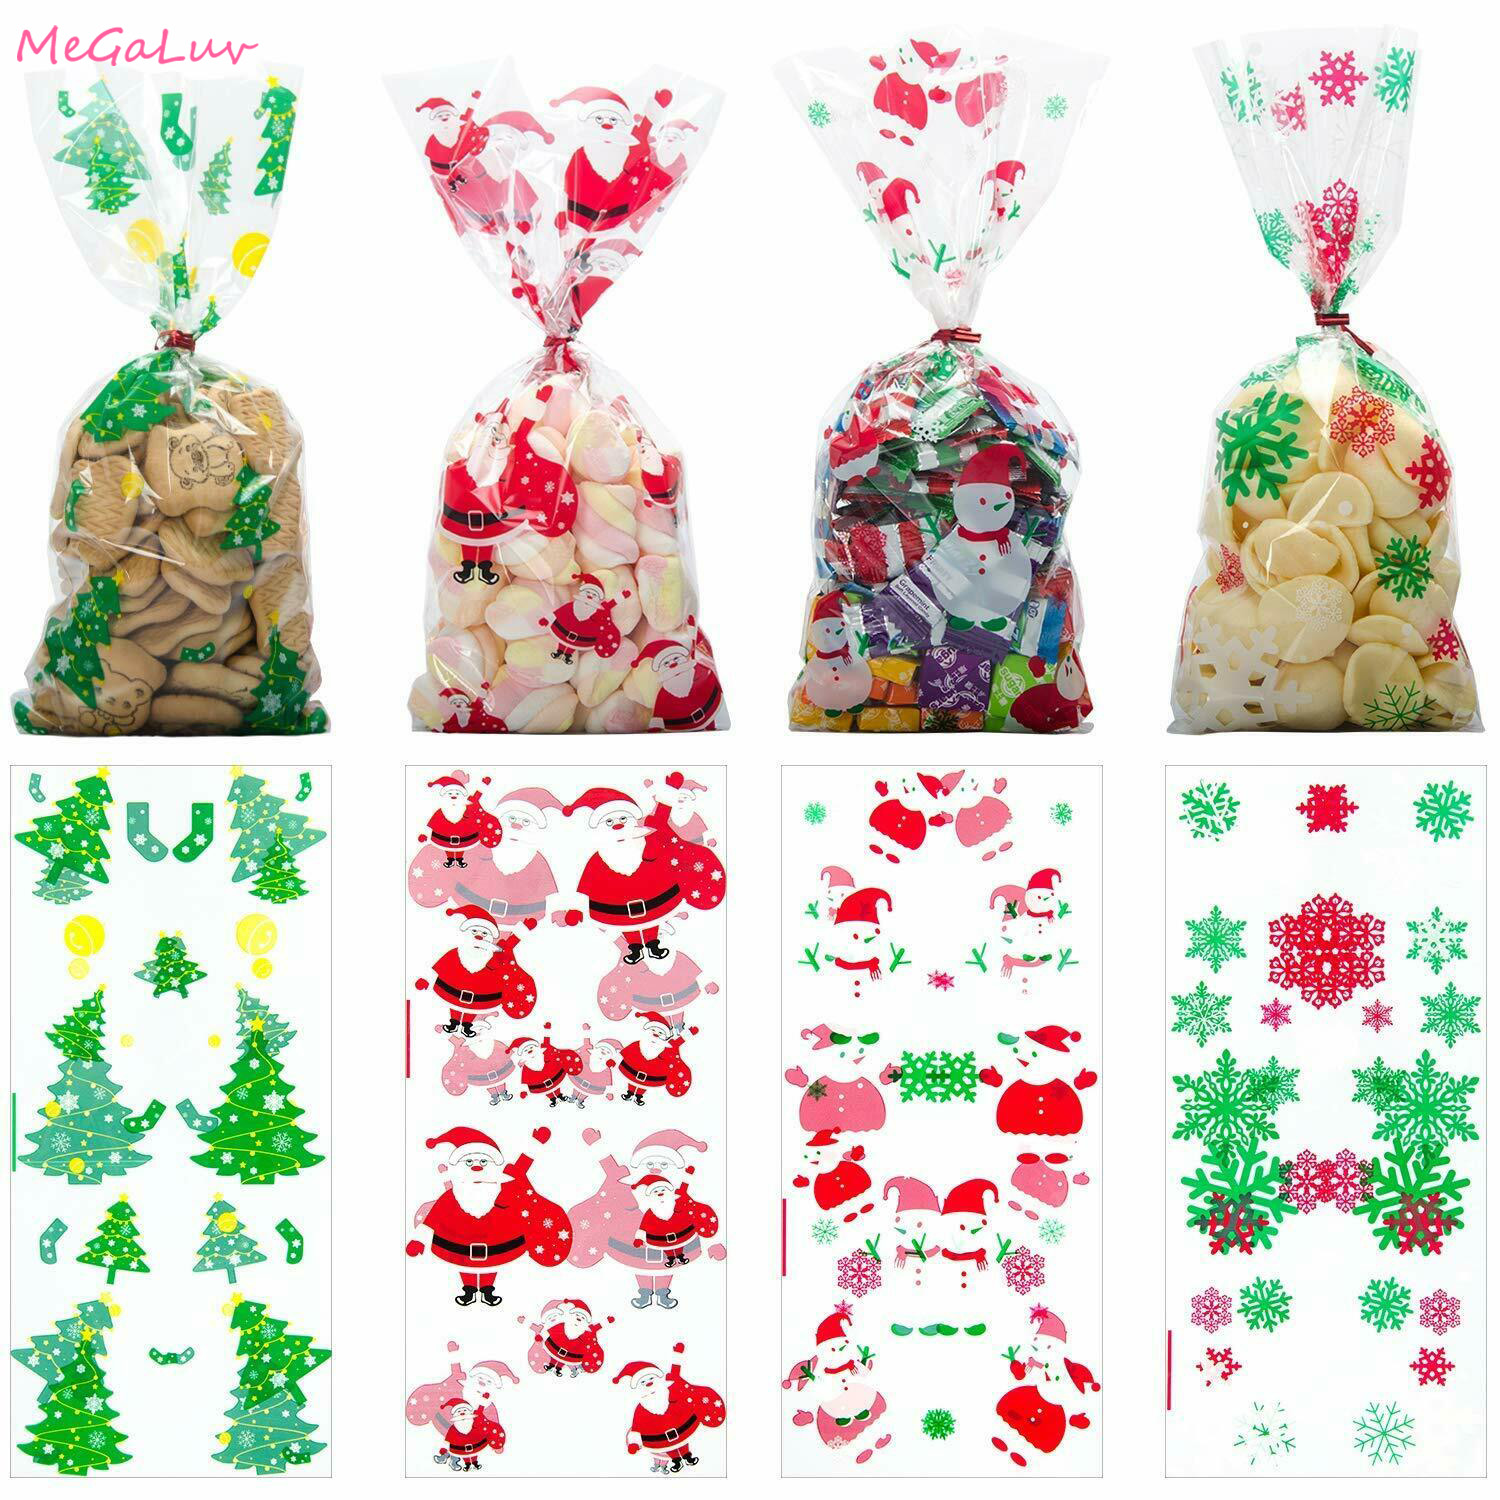 2 Styles Lifreer 200pcs Christmas Cookie Treat Bags Self-Adhesive Plastic Cellophane Candy Package Xmas Theme for Party Gift Supplies